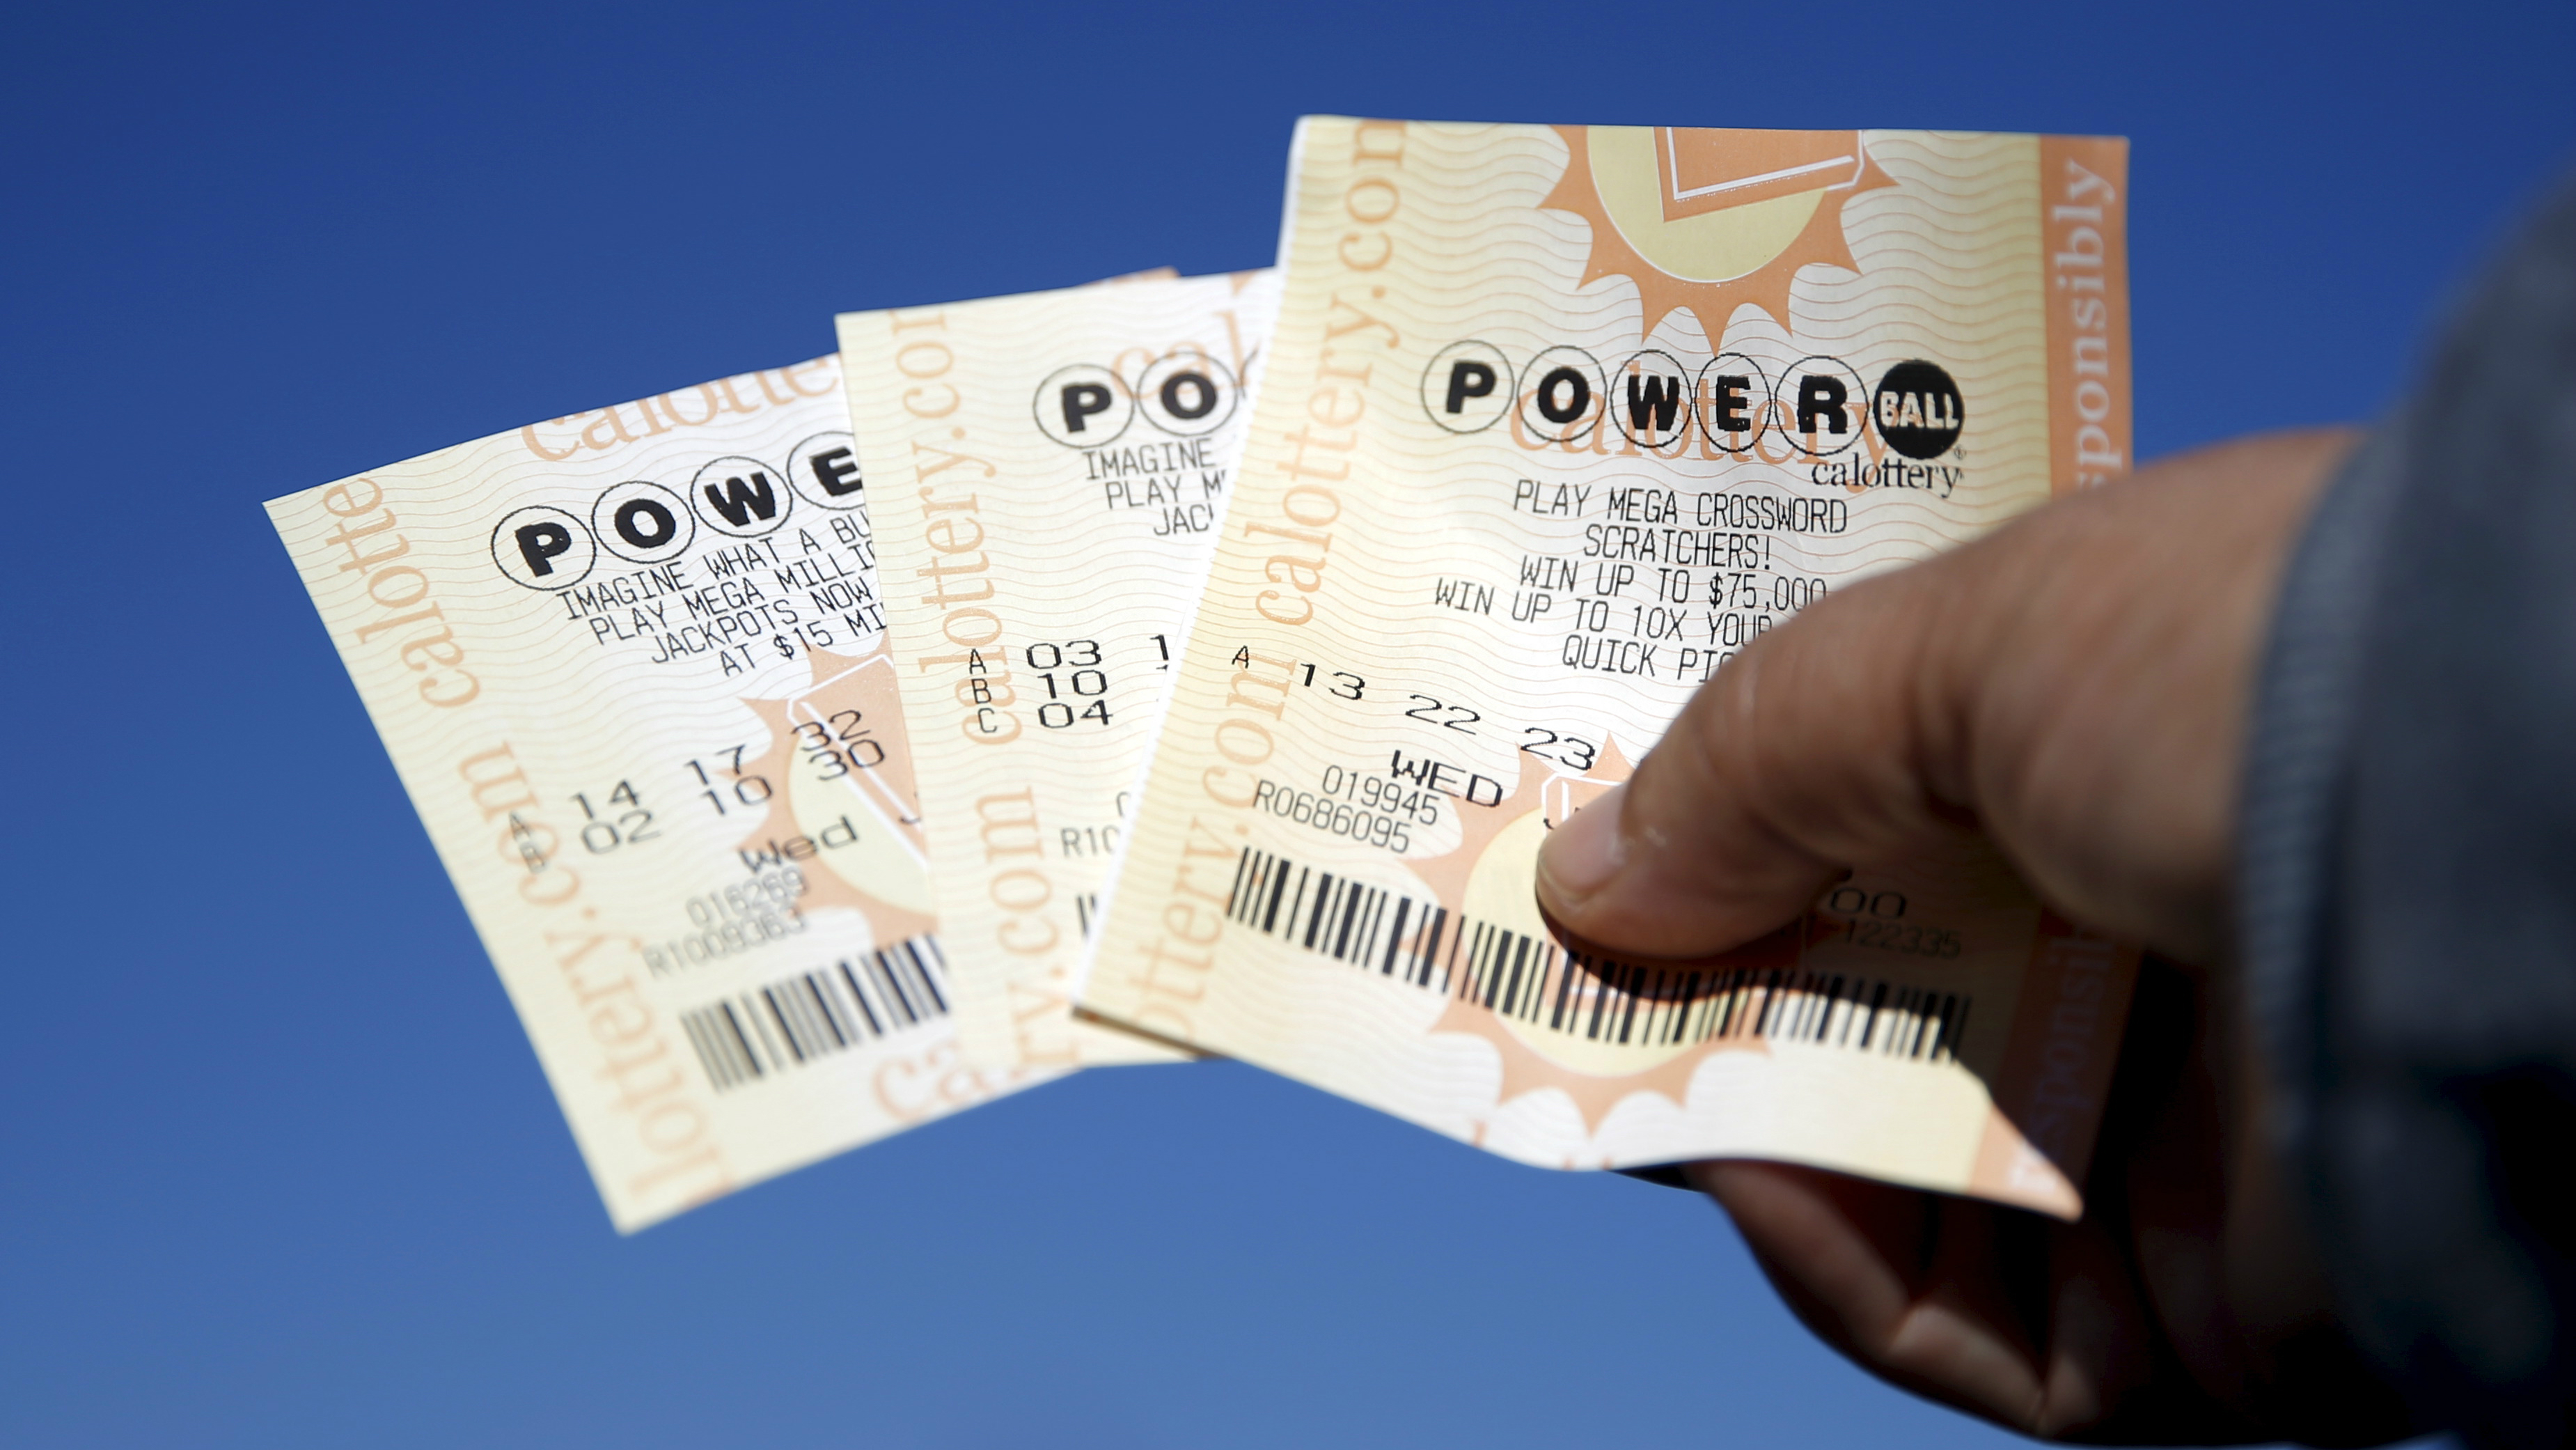 powerball lucy nicholson reuters